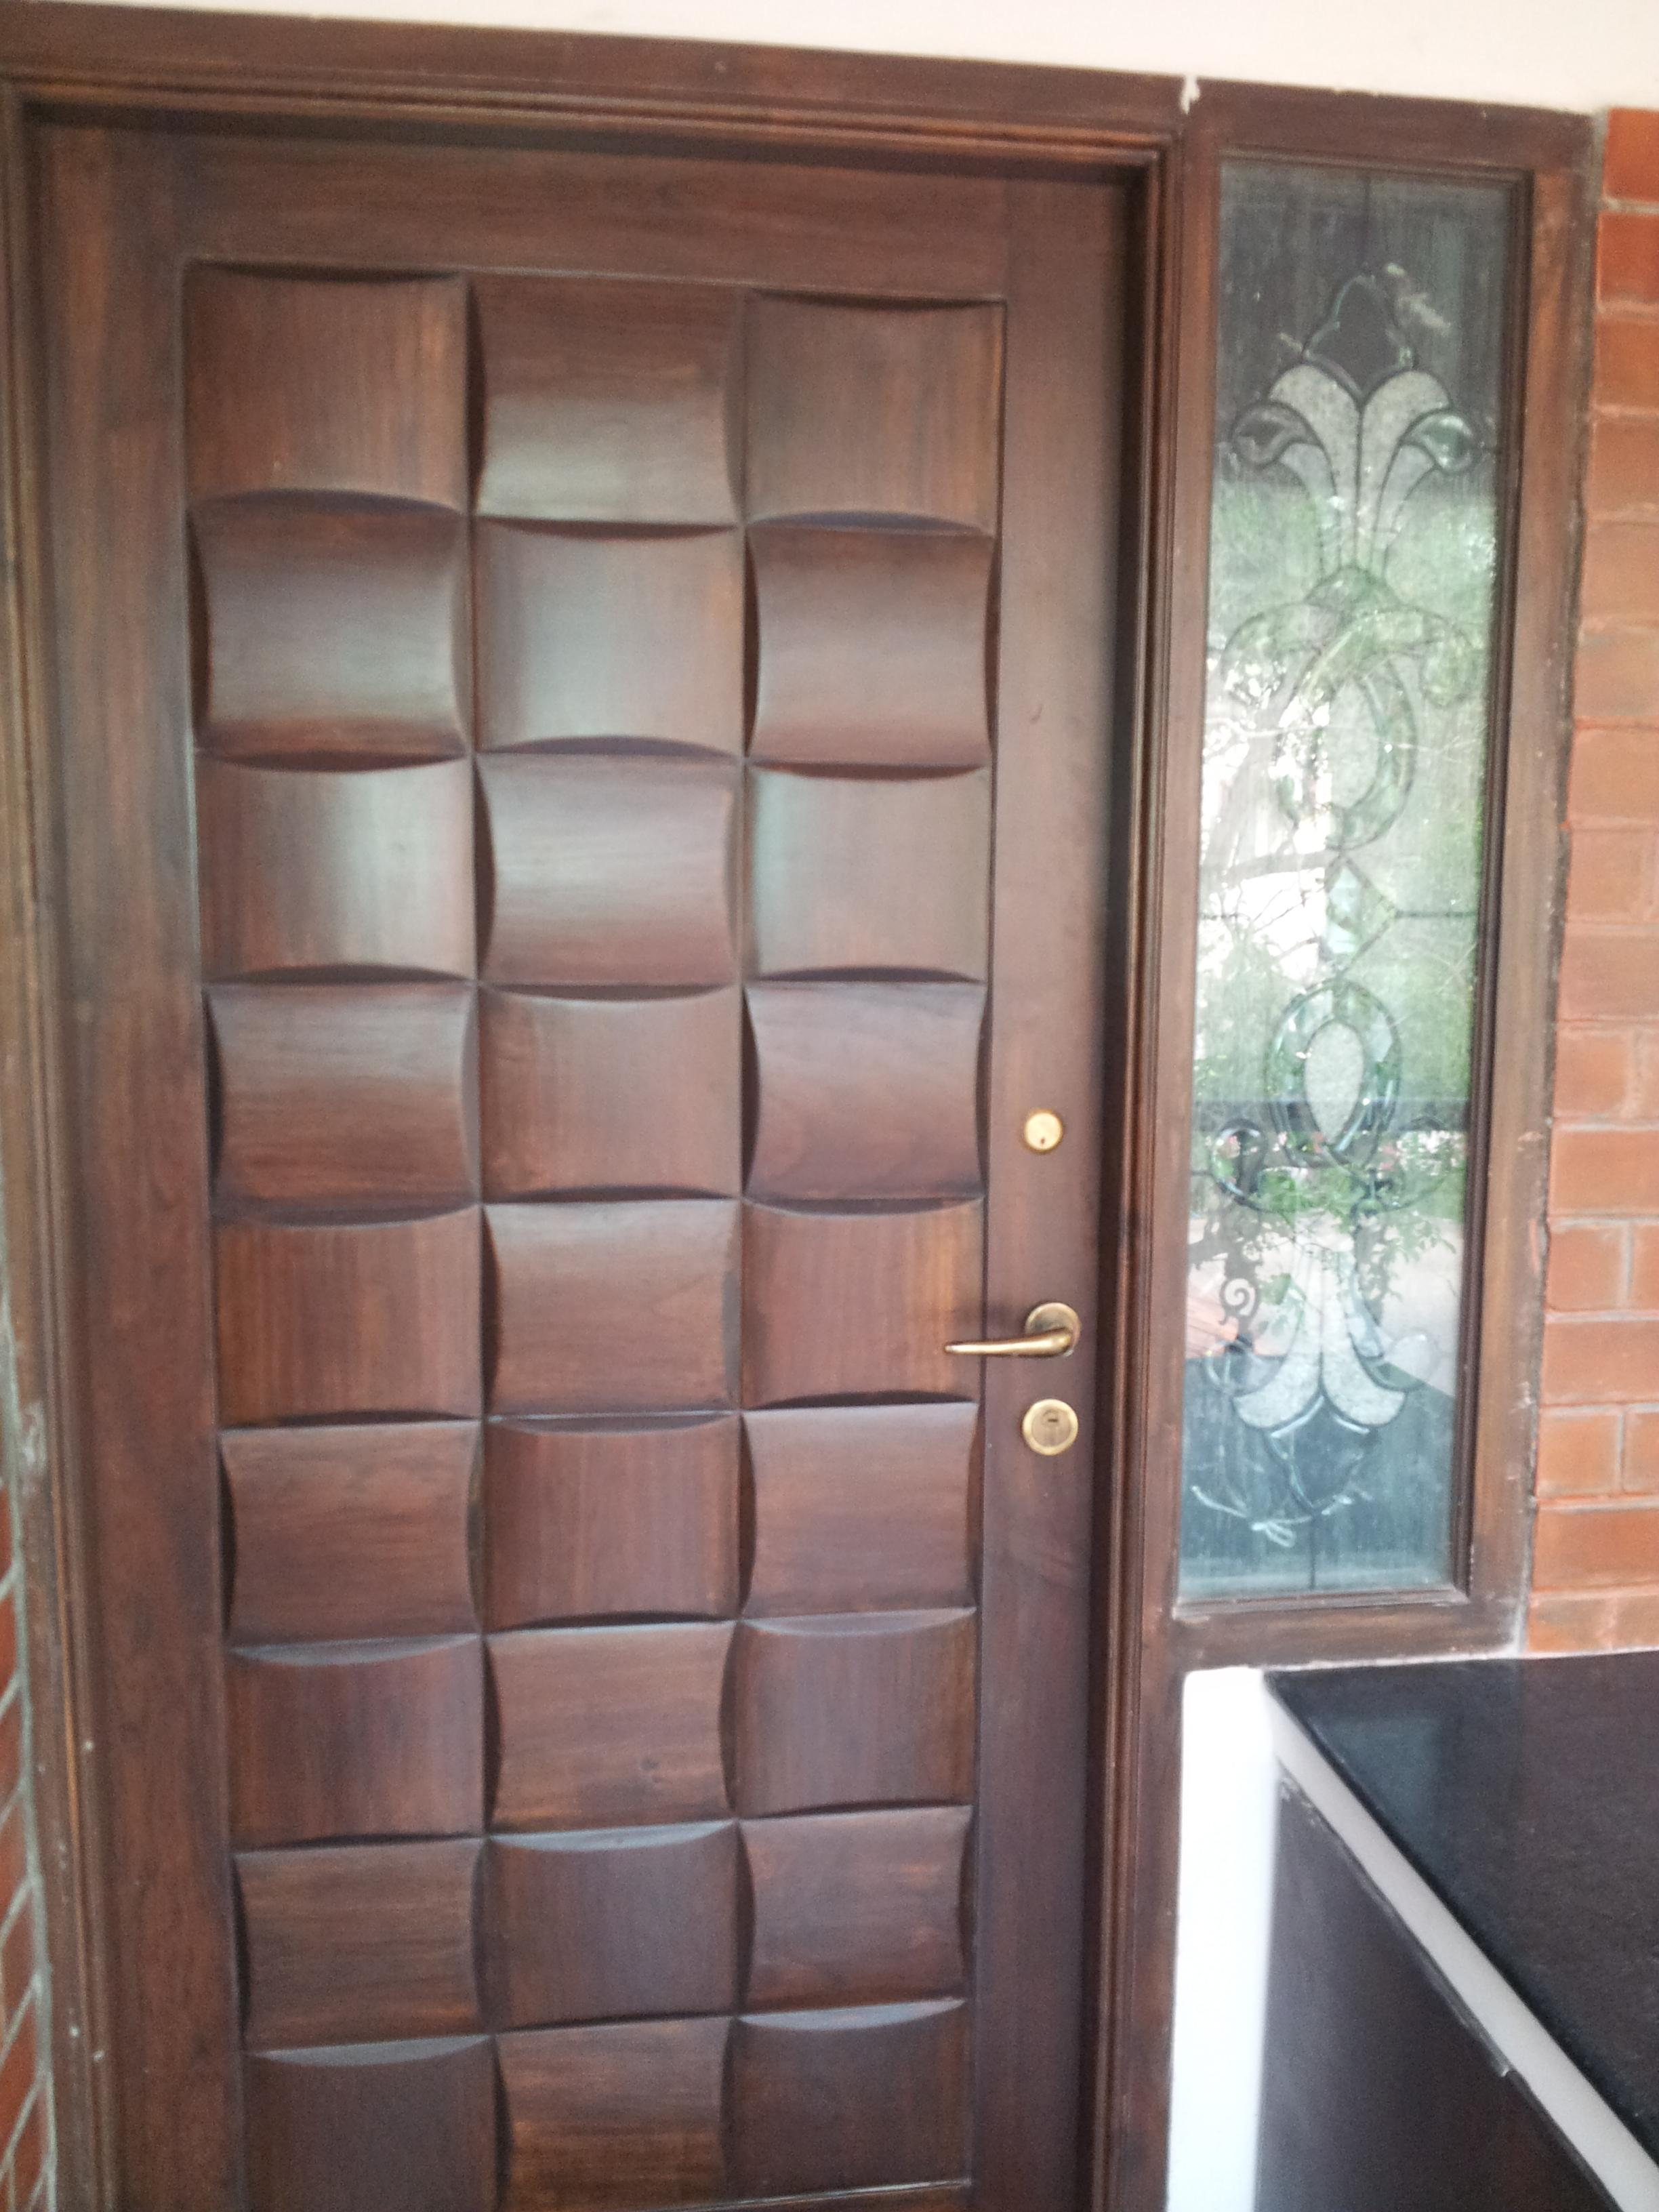 Main door design in wood very popular in 2013 gharexpert for Wooden door designs for main door